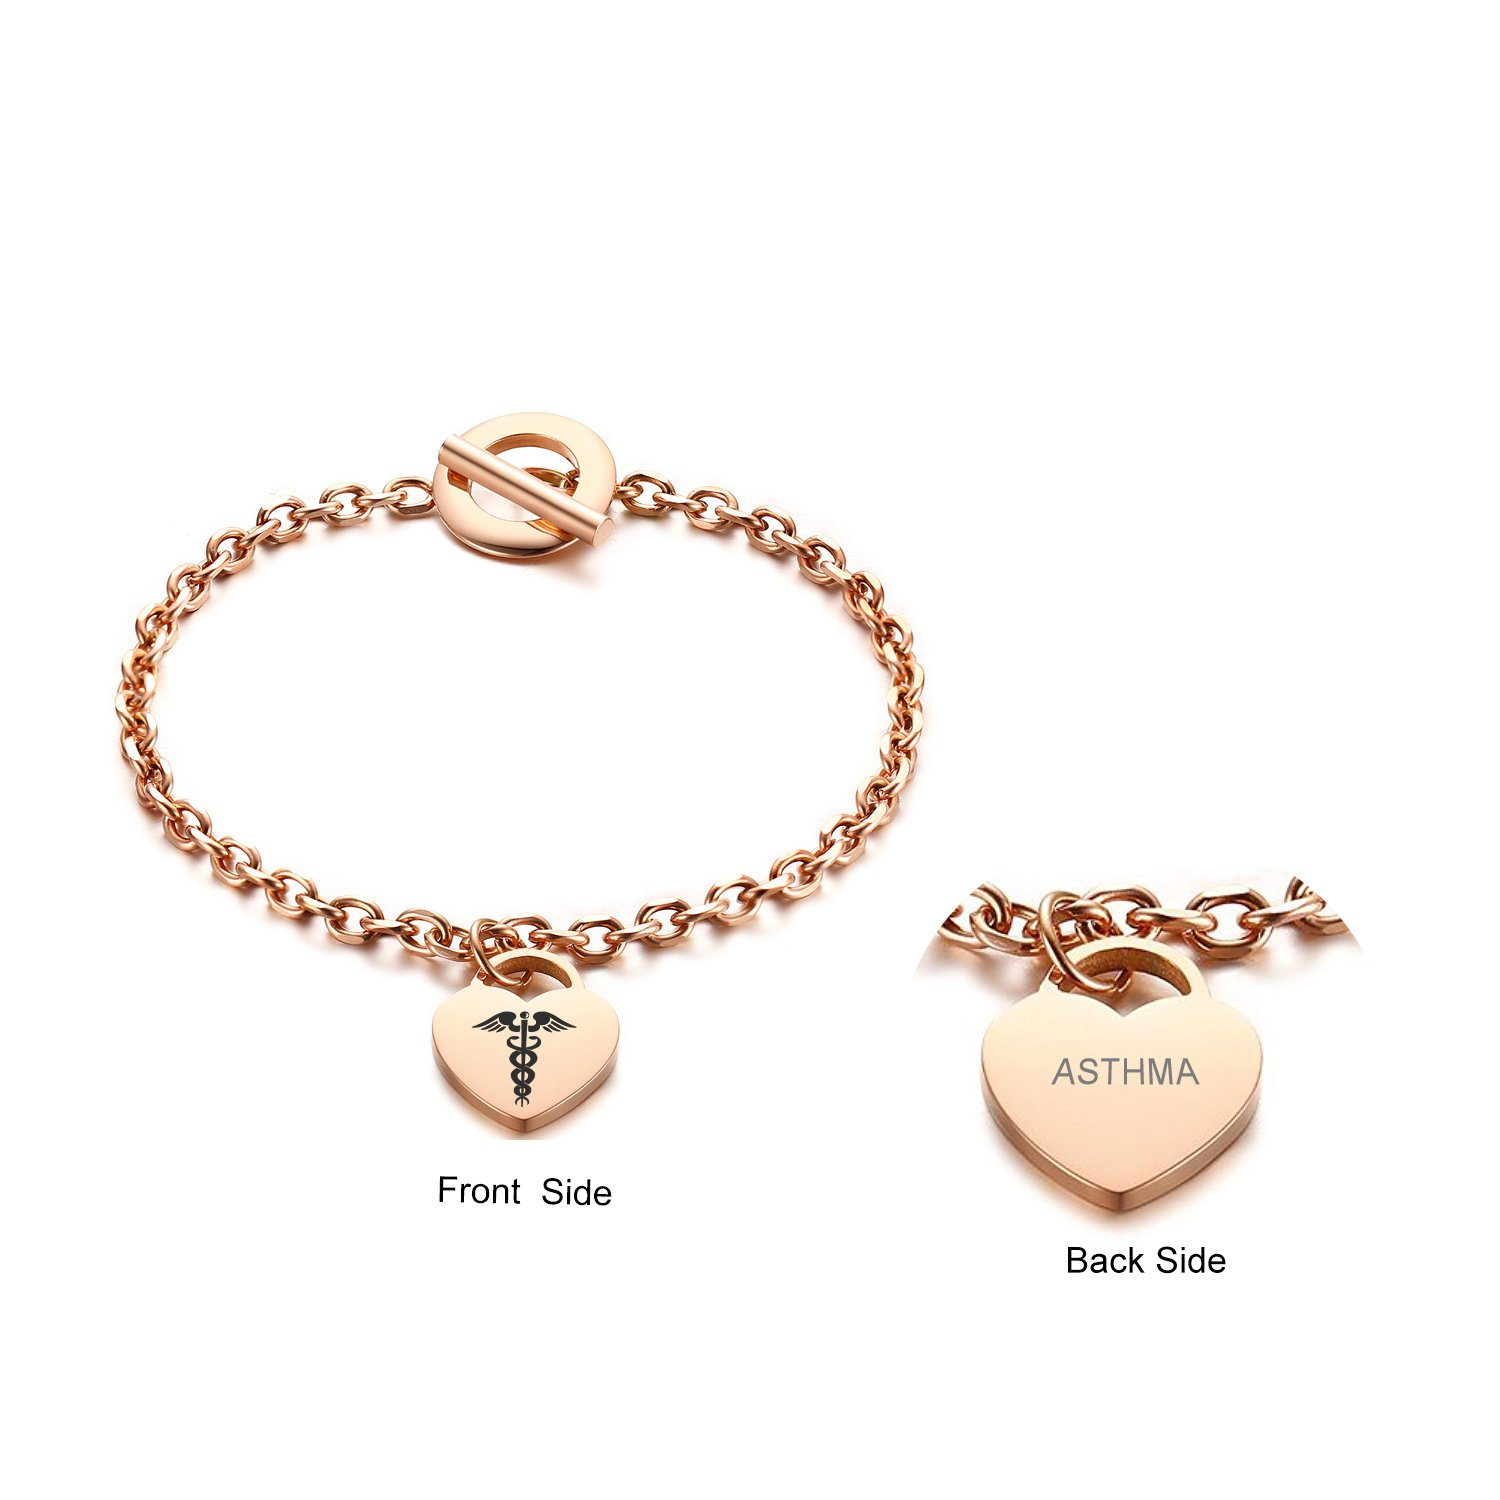 VNOX ASTHMA Medical Caduceus Heart Drop Toggle Clasp Bracelet Rose Gold Plated Stainless Steel,7.5''